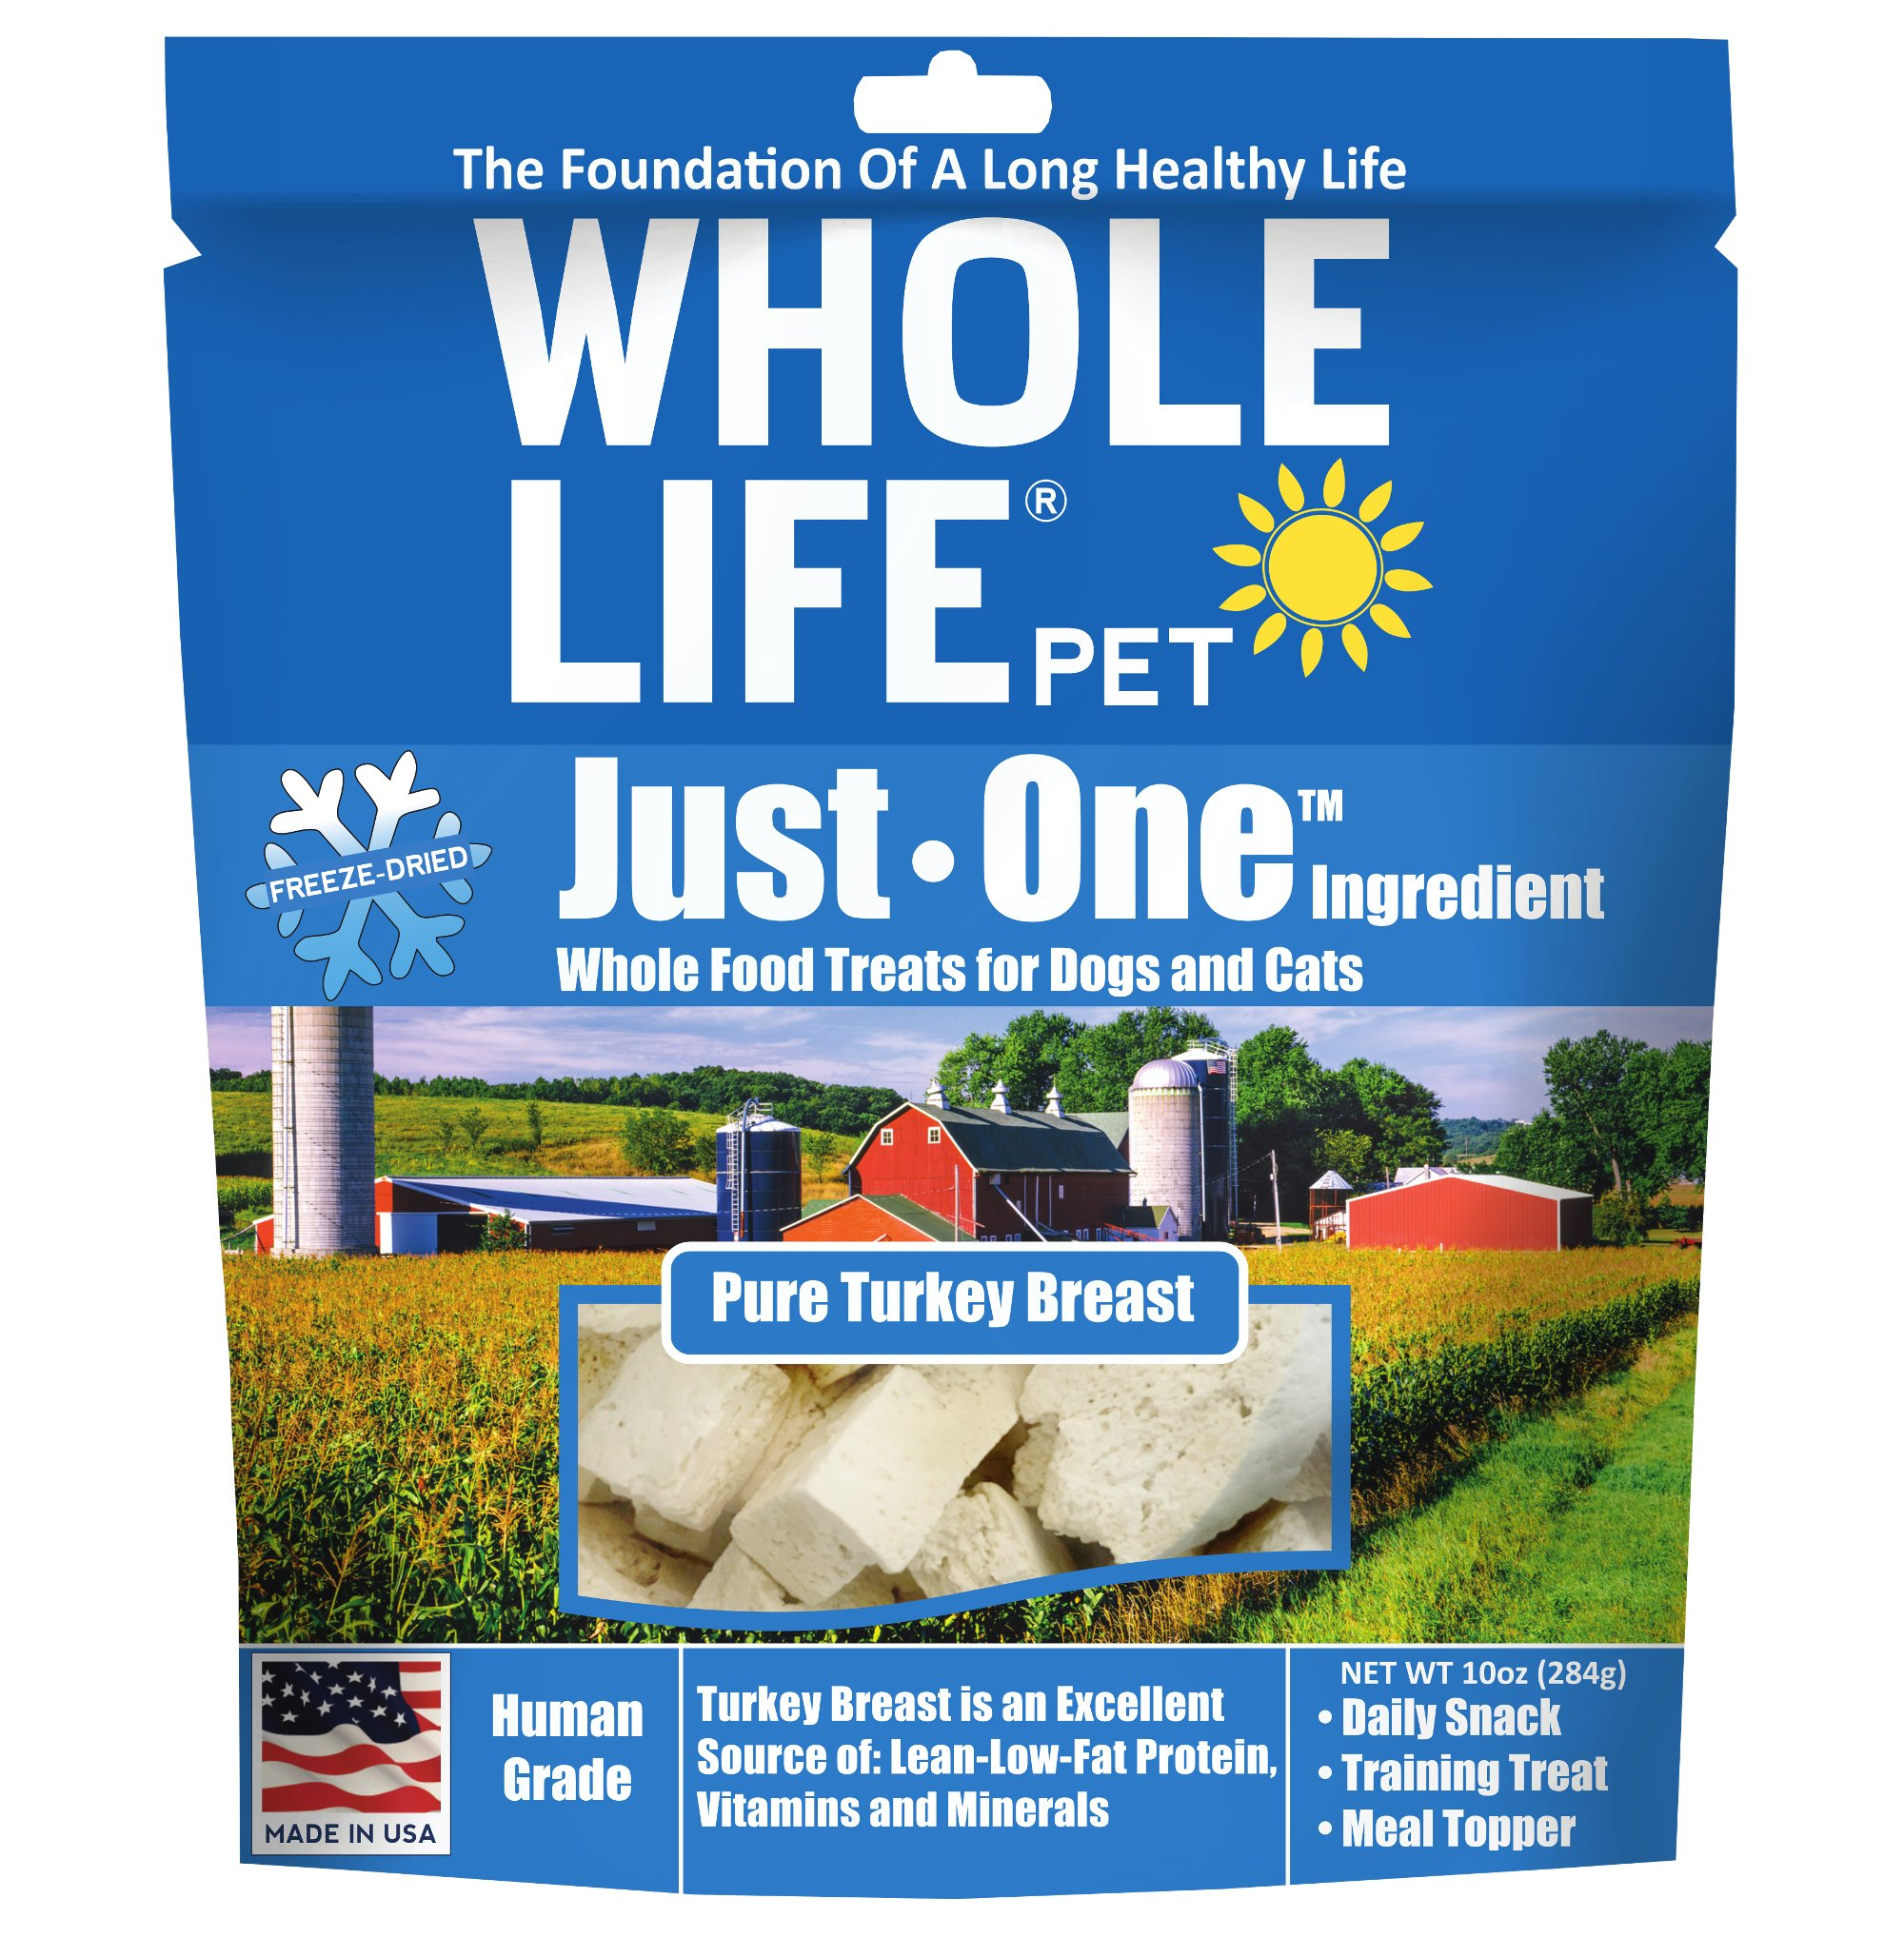 Whole Life Pet Single Ingredient Usa Freeze Dried Turkey Breast Treats Value Pack For Dogs And Cats, 10-Ounce by Whole Life Pet Products